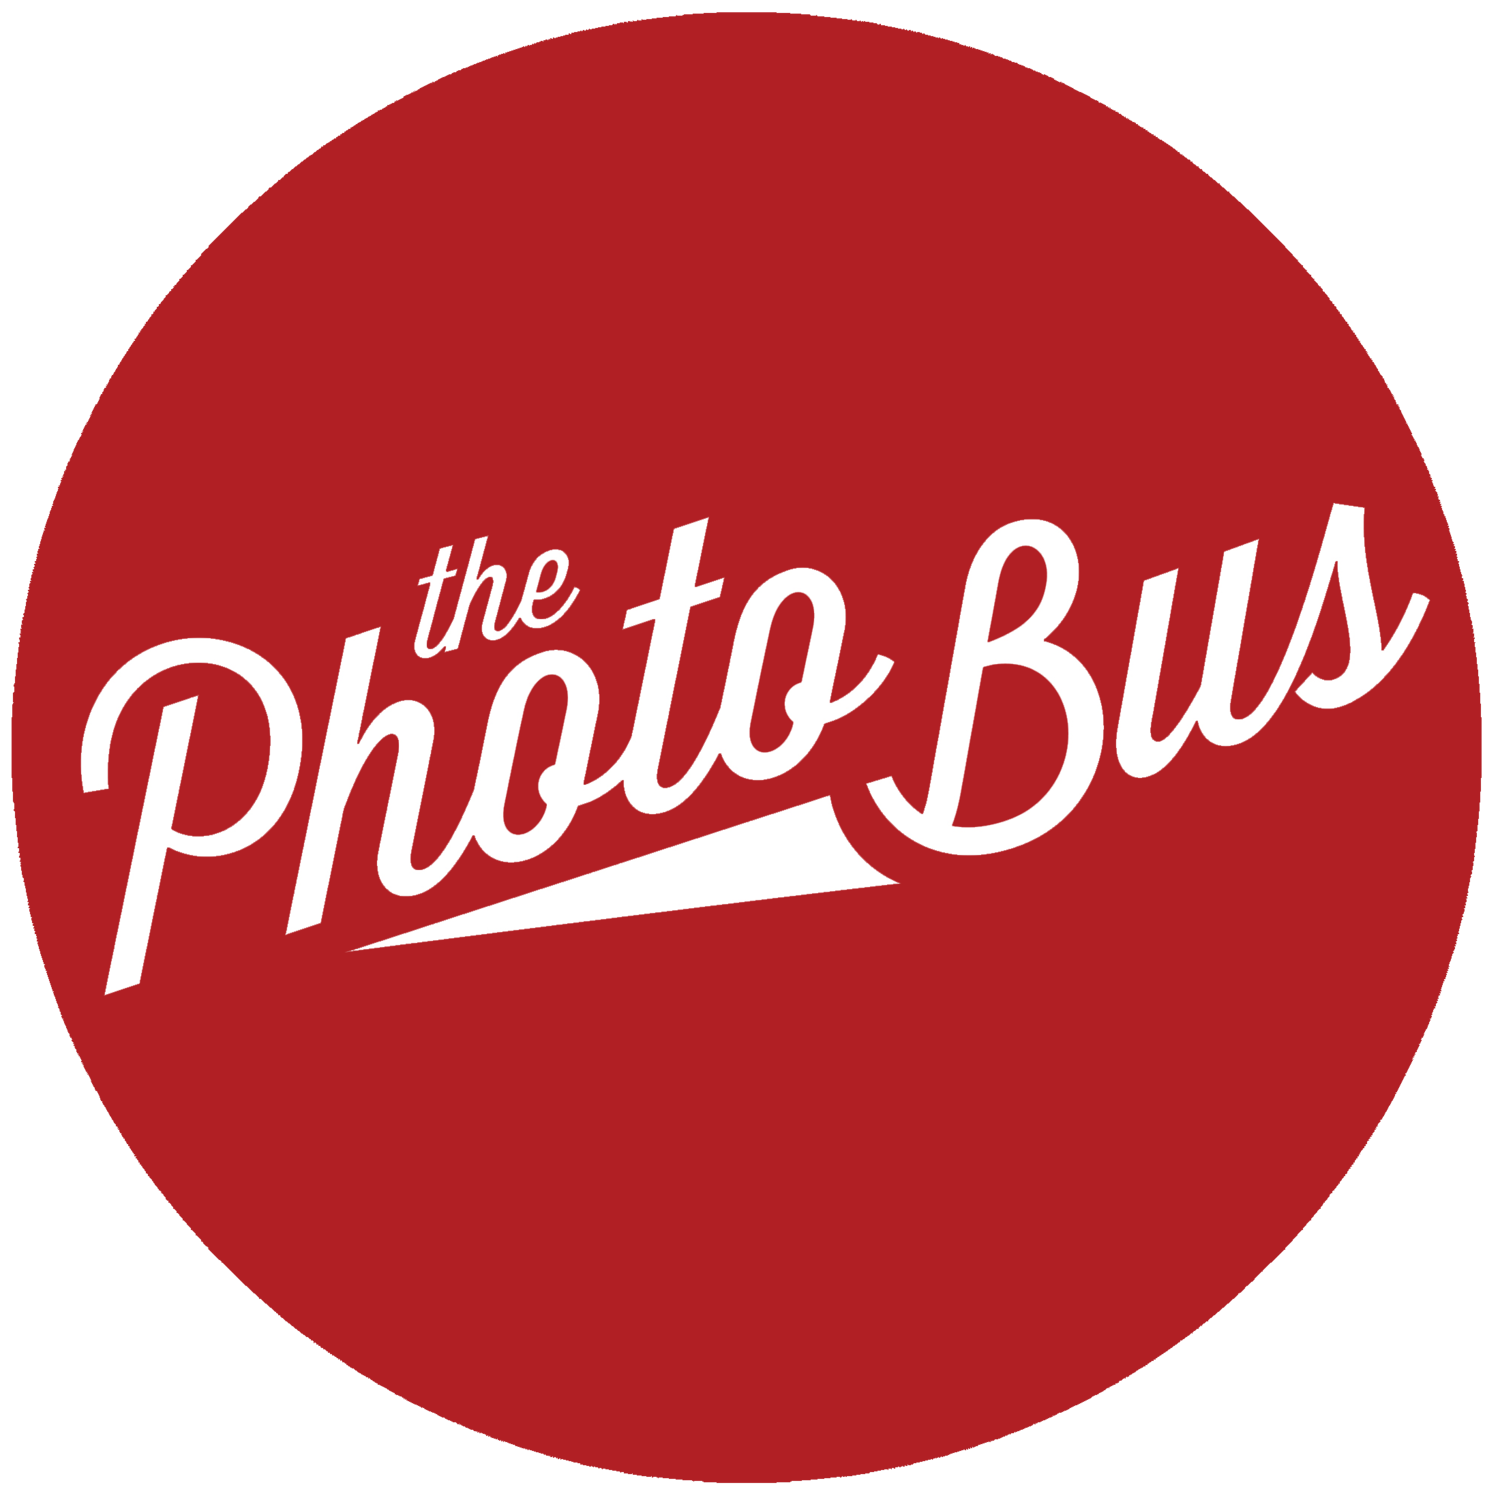 The Photo Bus El Paso